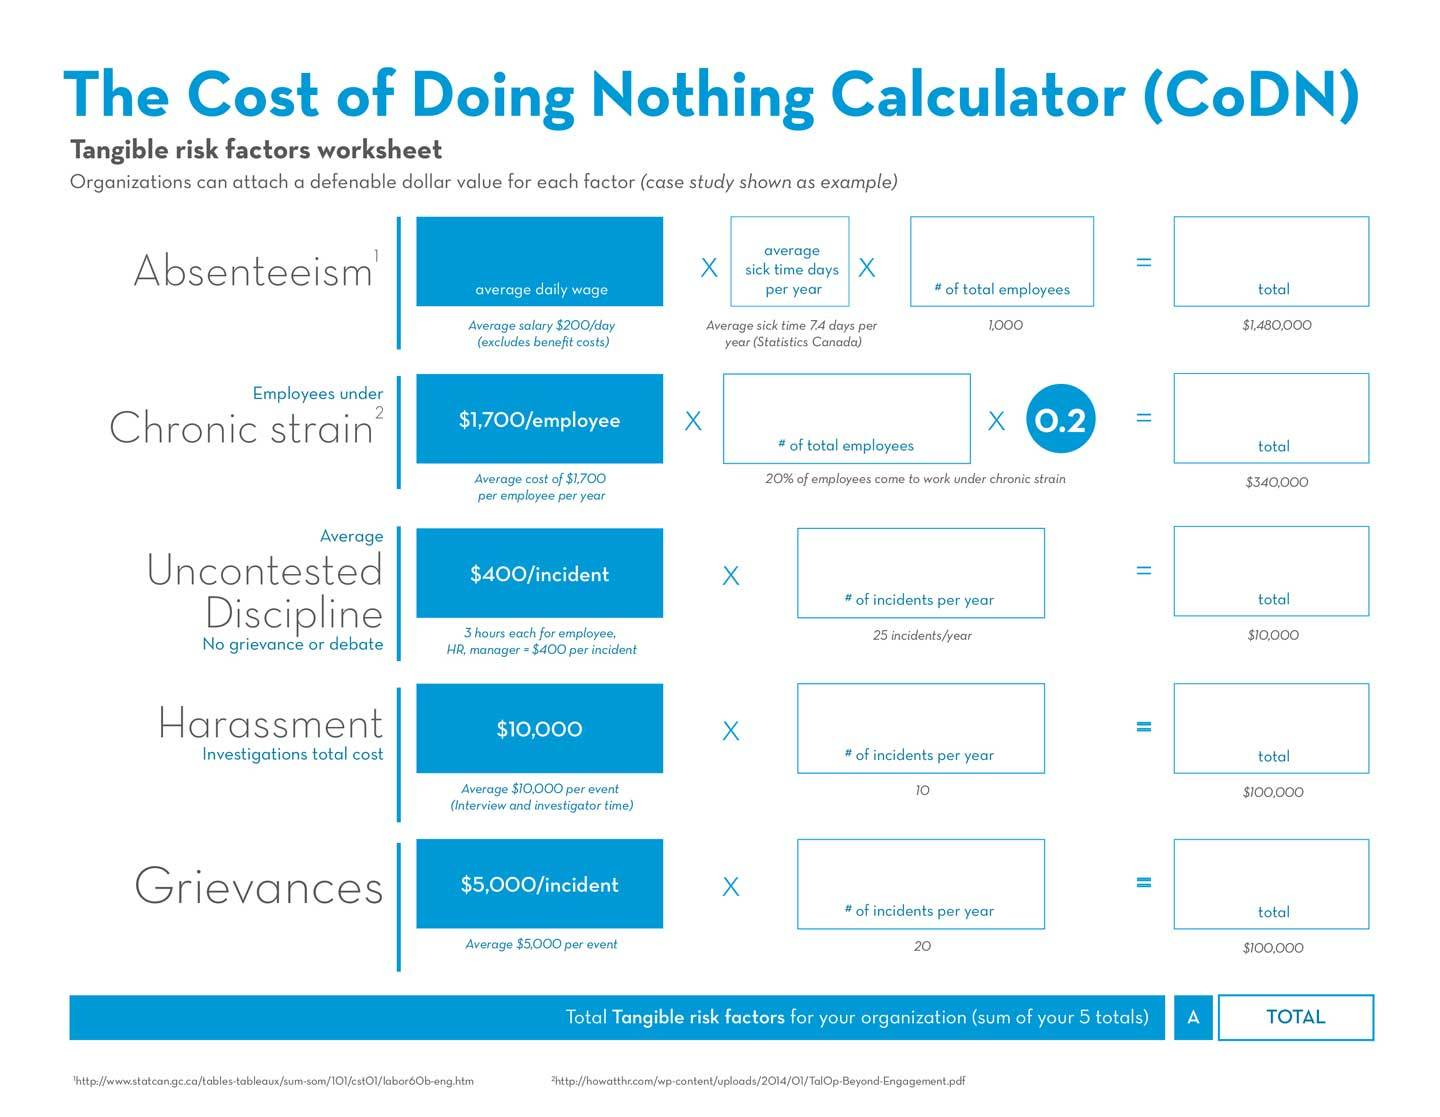 The cost of doing nothing calculator (CoDN) infographic